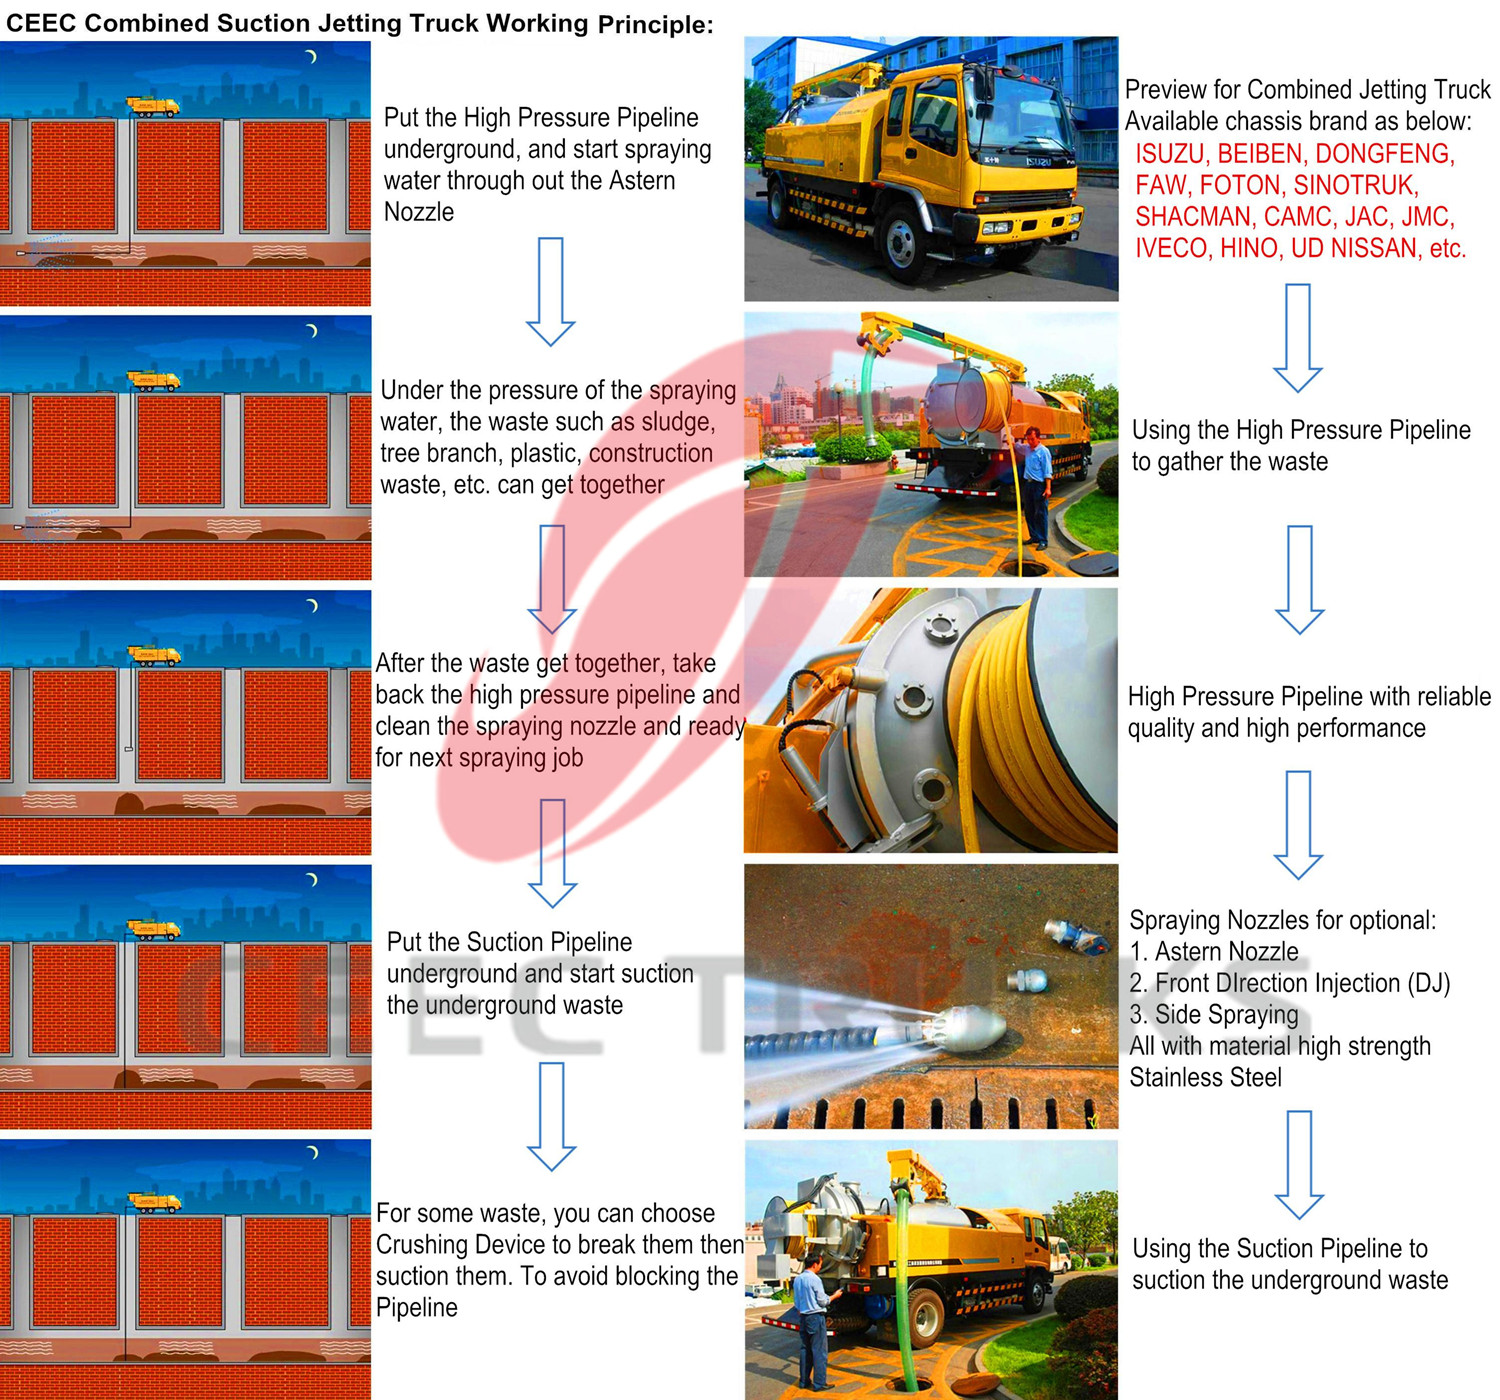 2016 produced combined jetting truck working principle